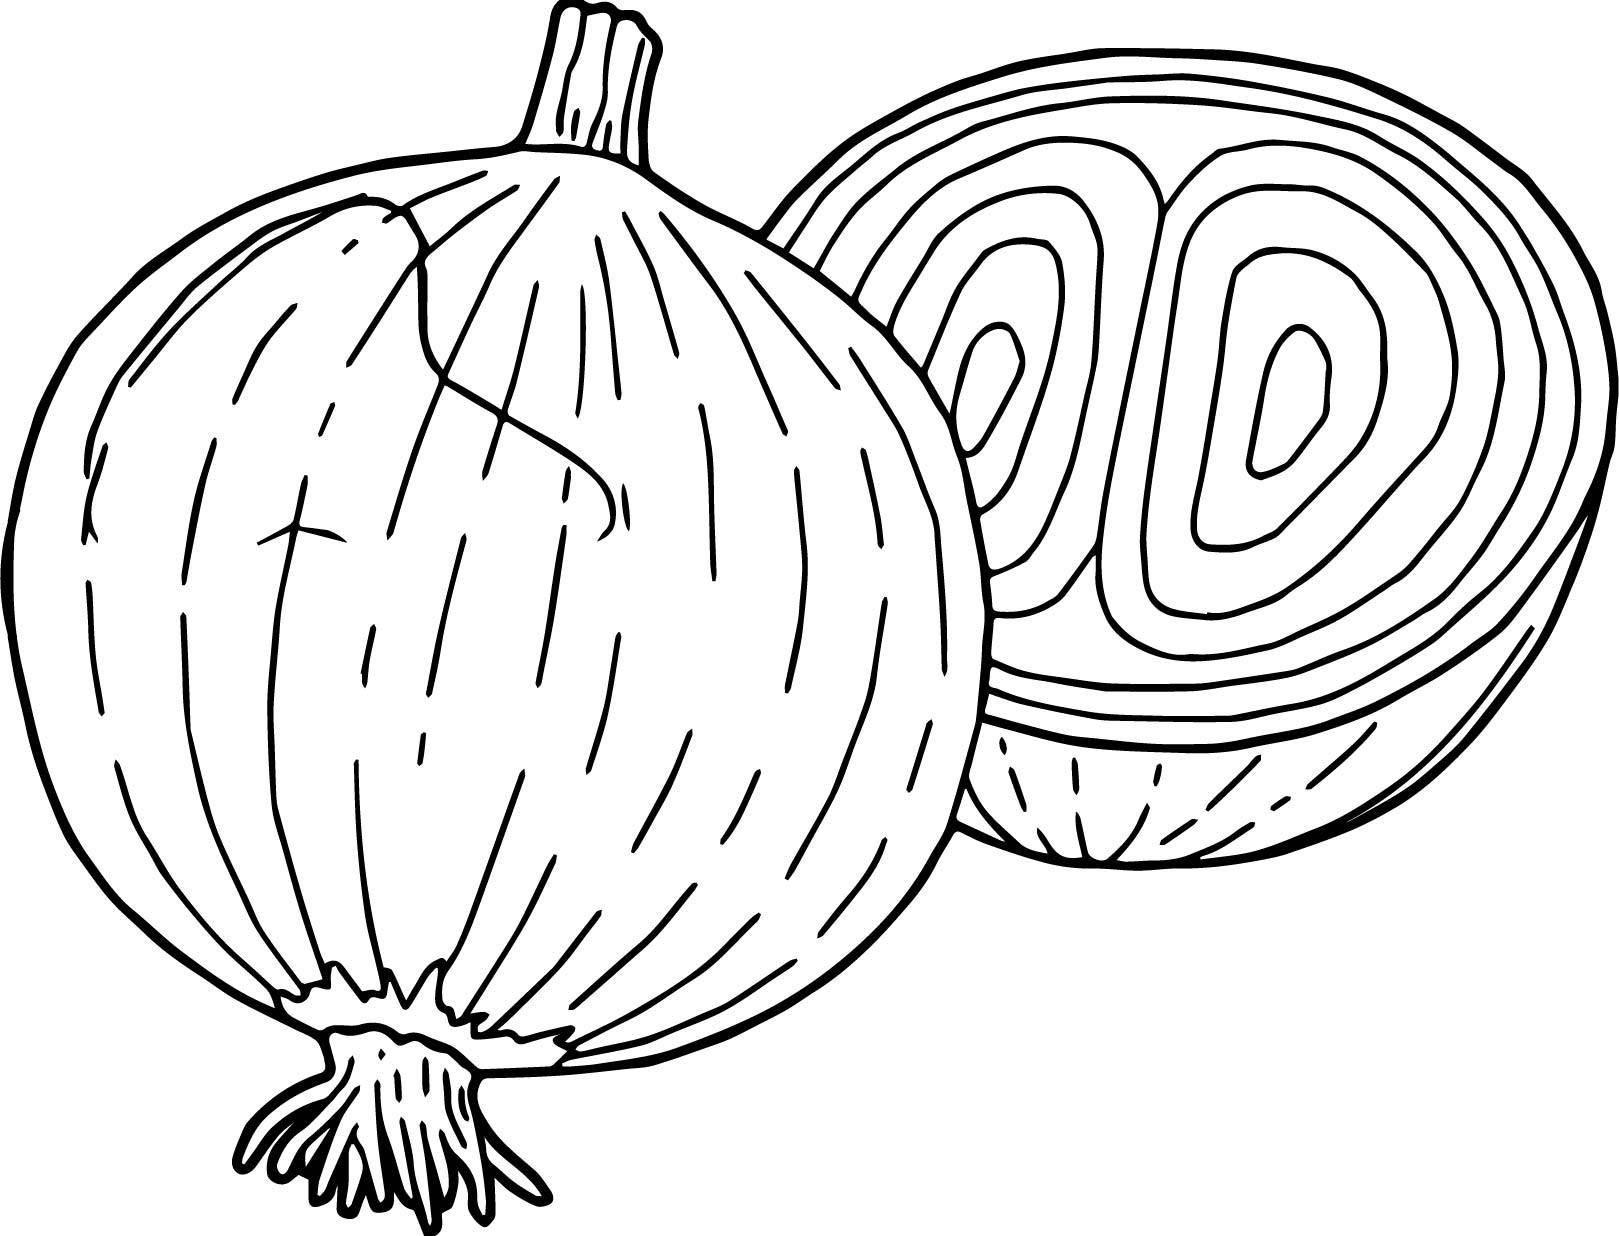 Onion Coloring Page At Getdrawings